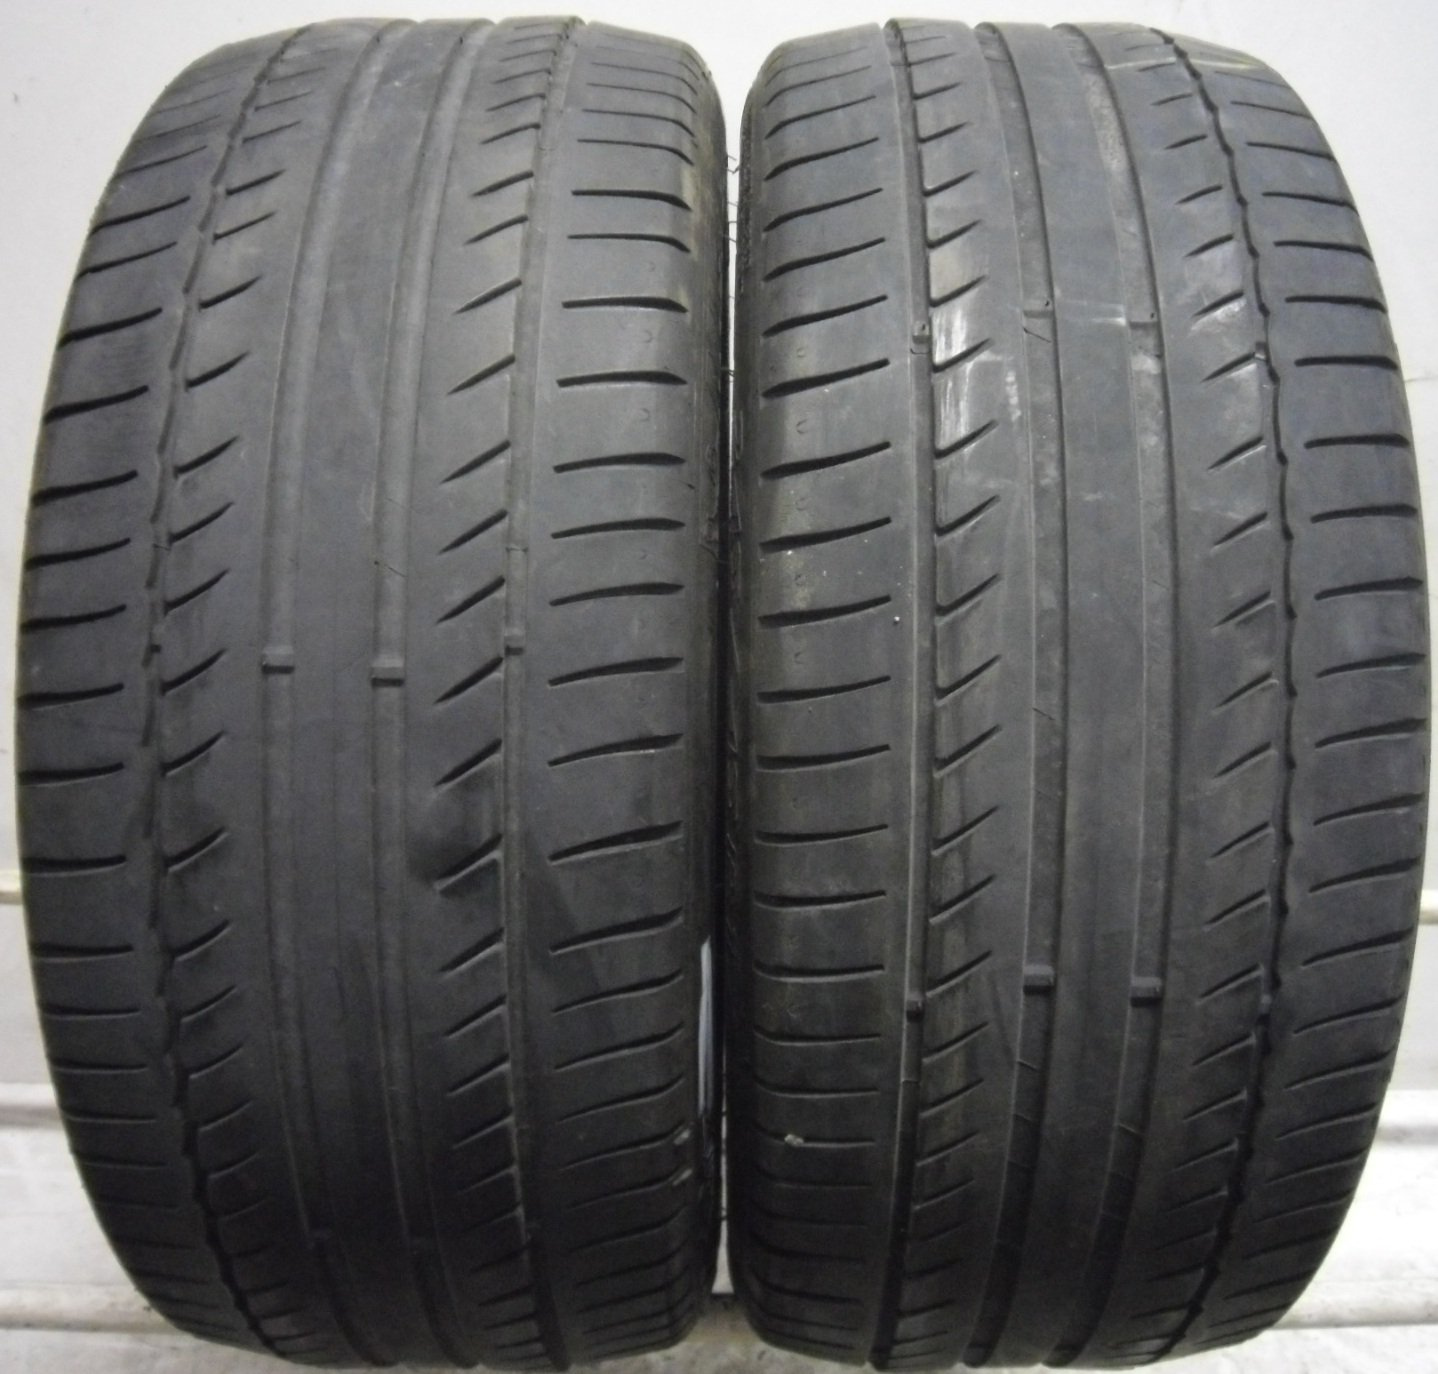 2 2454517 michelin 245 45 17 primacy hp zp runflat part worn used tyres x2. Black Bedroom Furniture Sets. Home Design Ideas